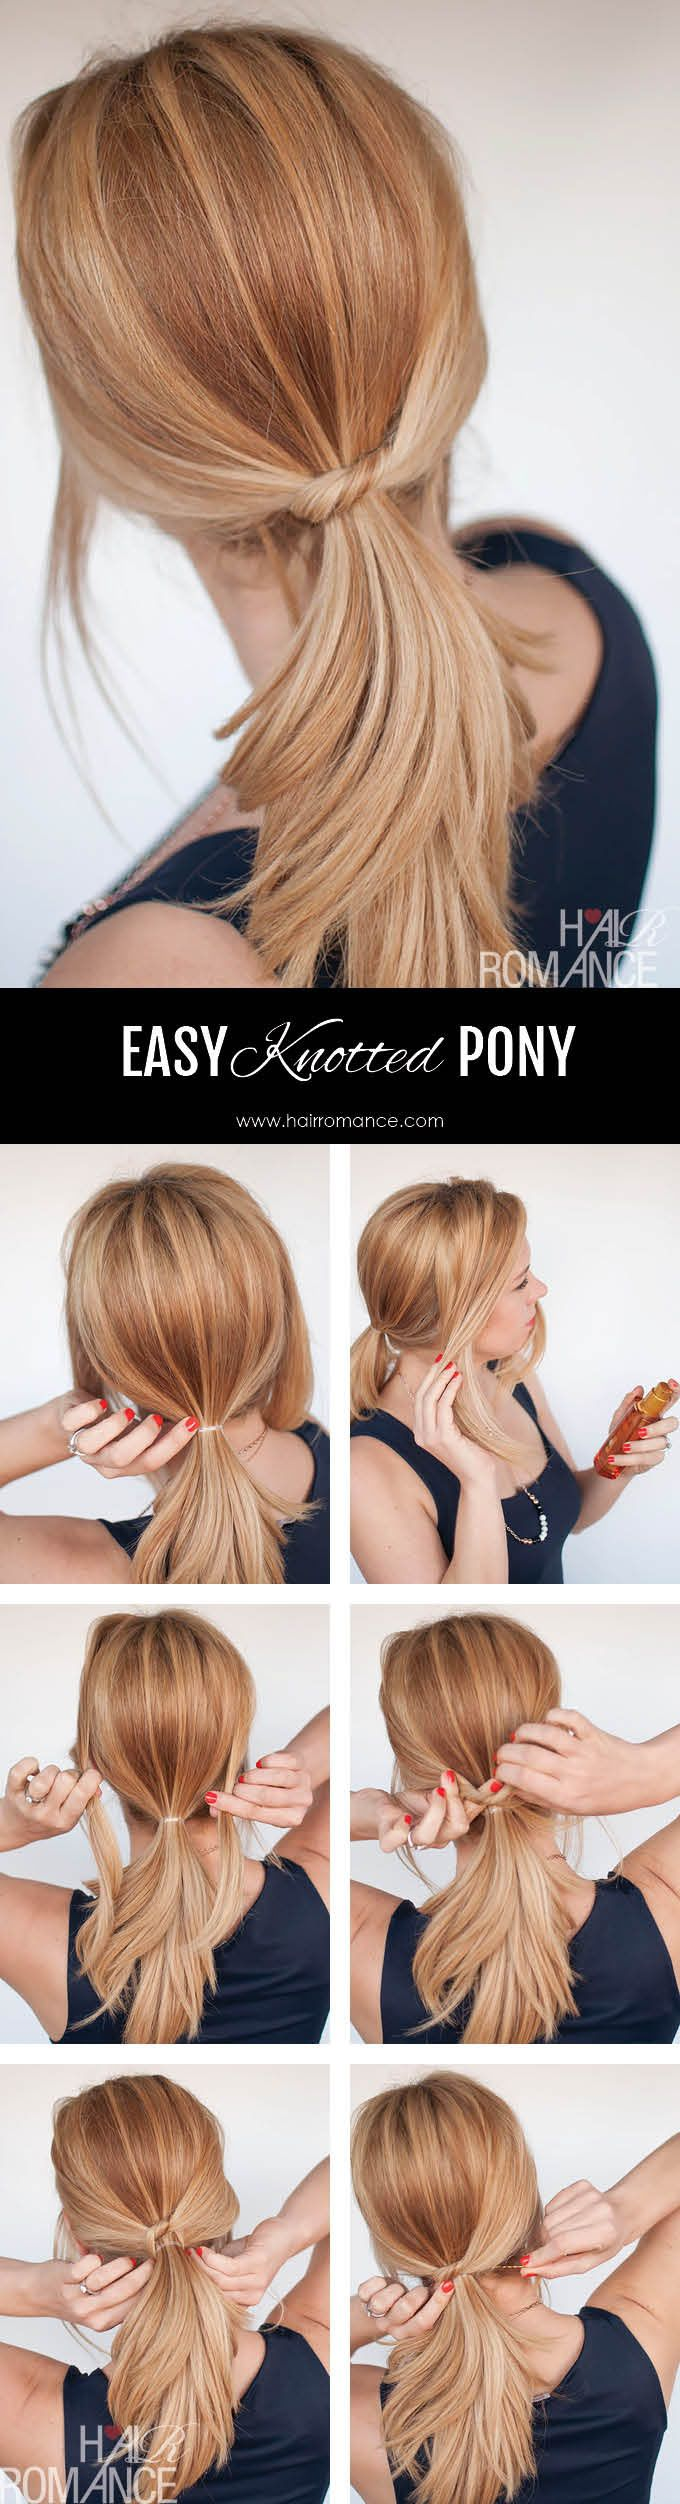 Miraculous 17 Best Ideas About Ponytail Tutorial On Pinterest Perfect Hairstyles For Women Draintrainus